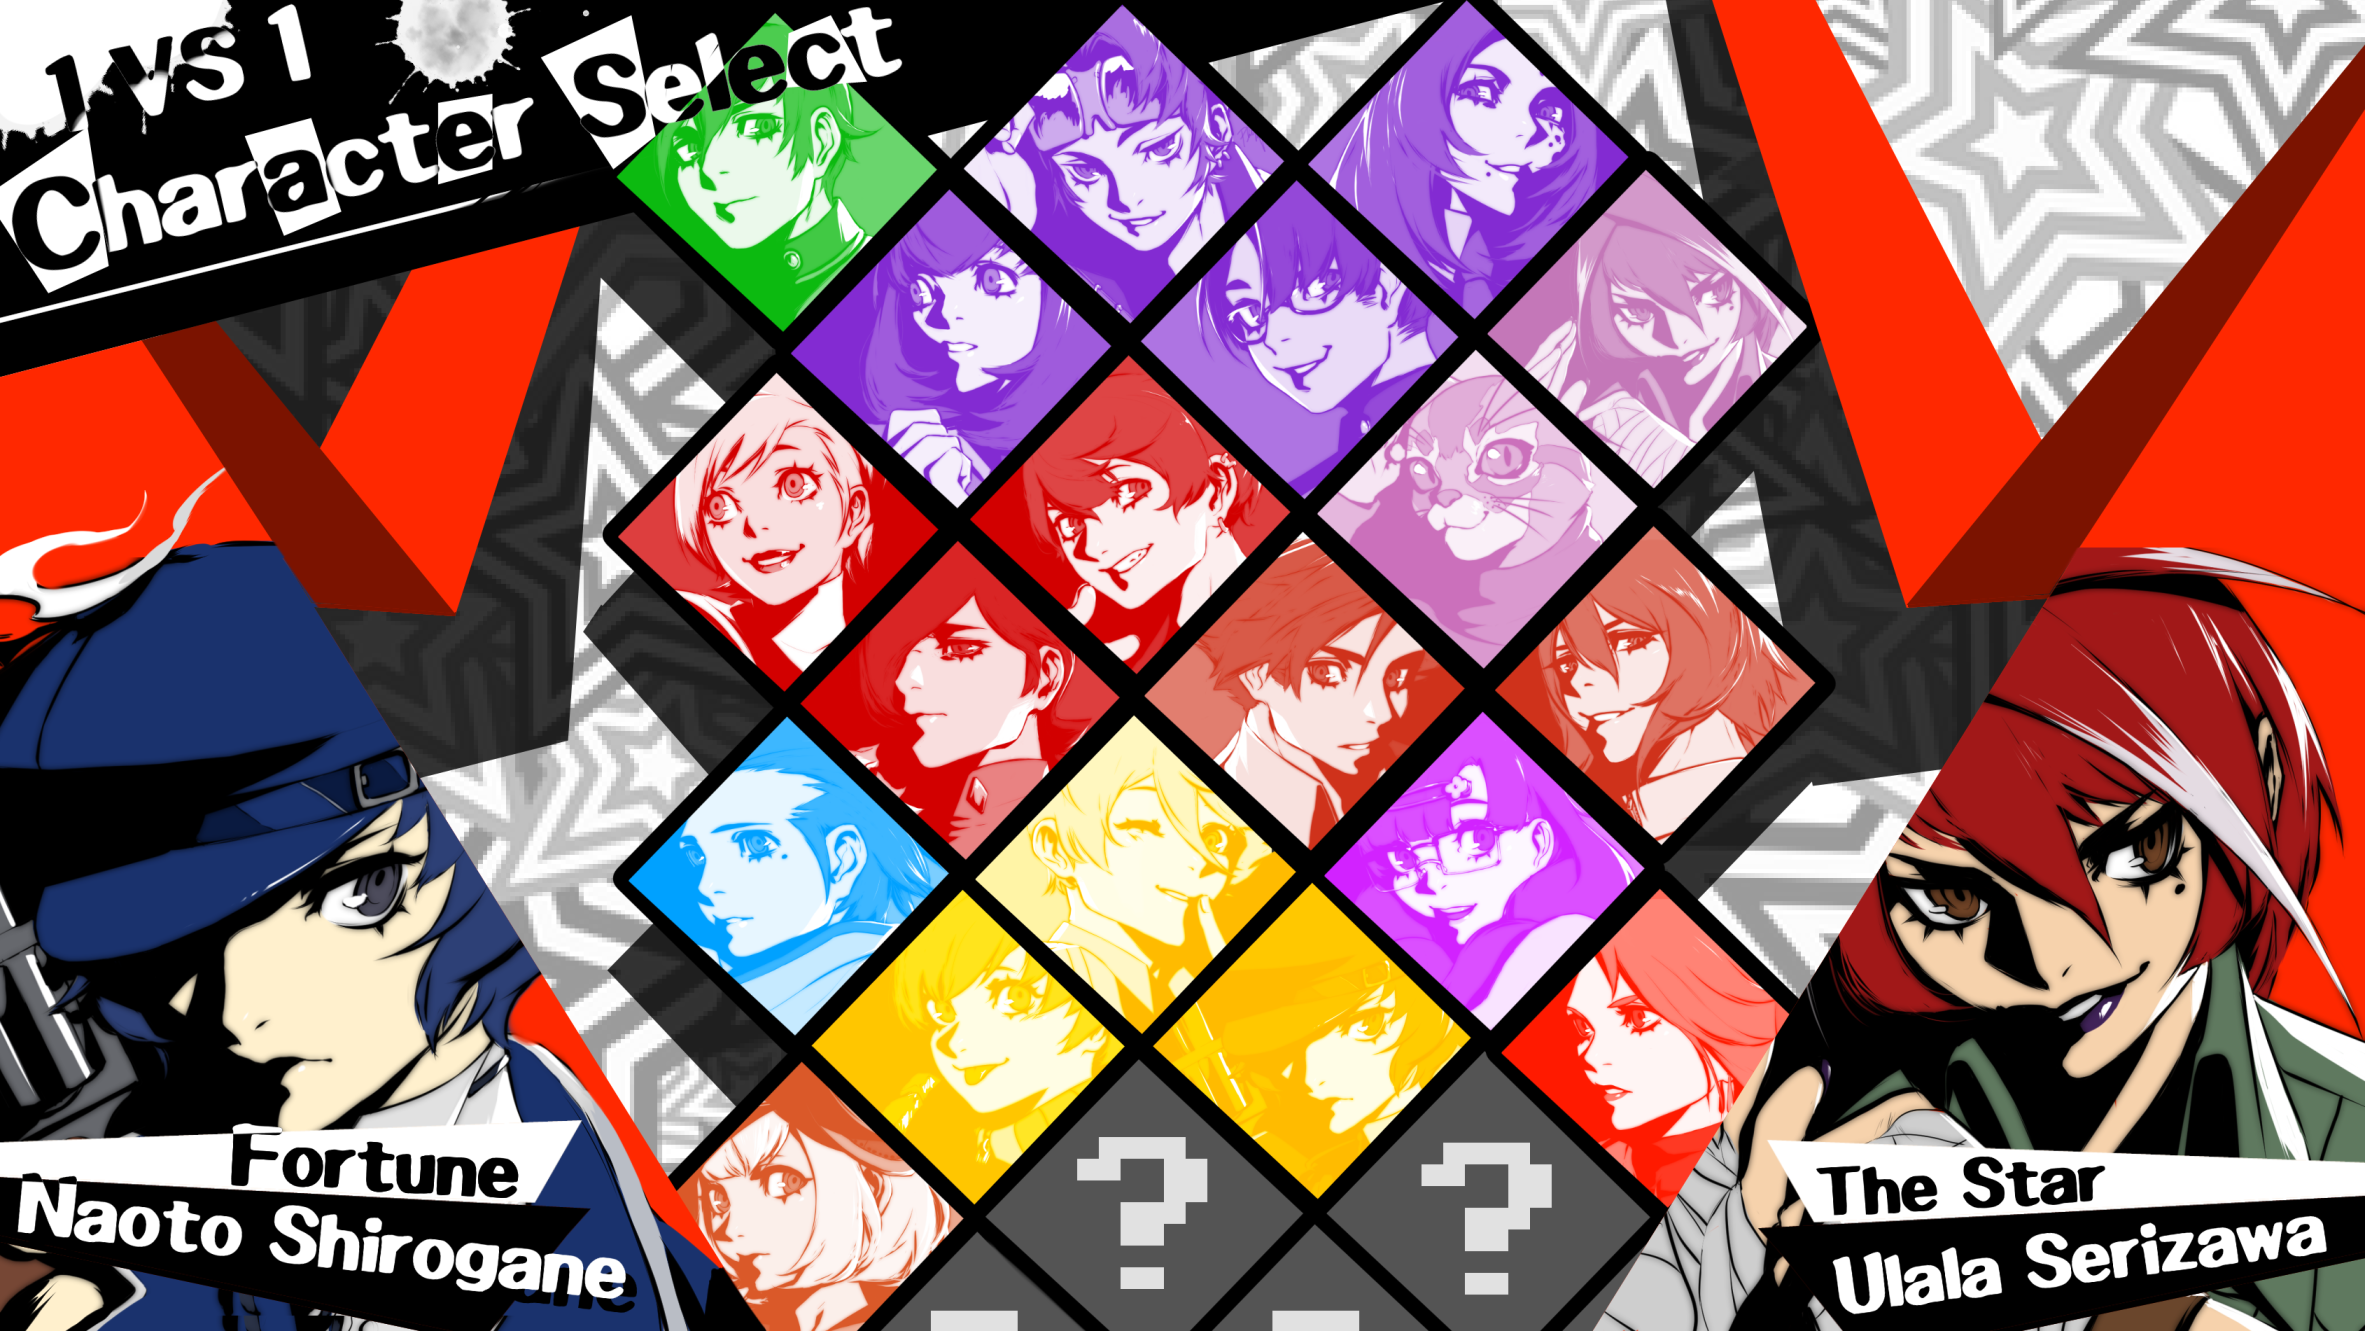 My dream game. Atlus MAKE IT HAPPEN. Made with my drawings and all done myself (except the stars)